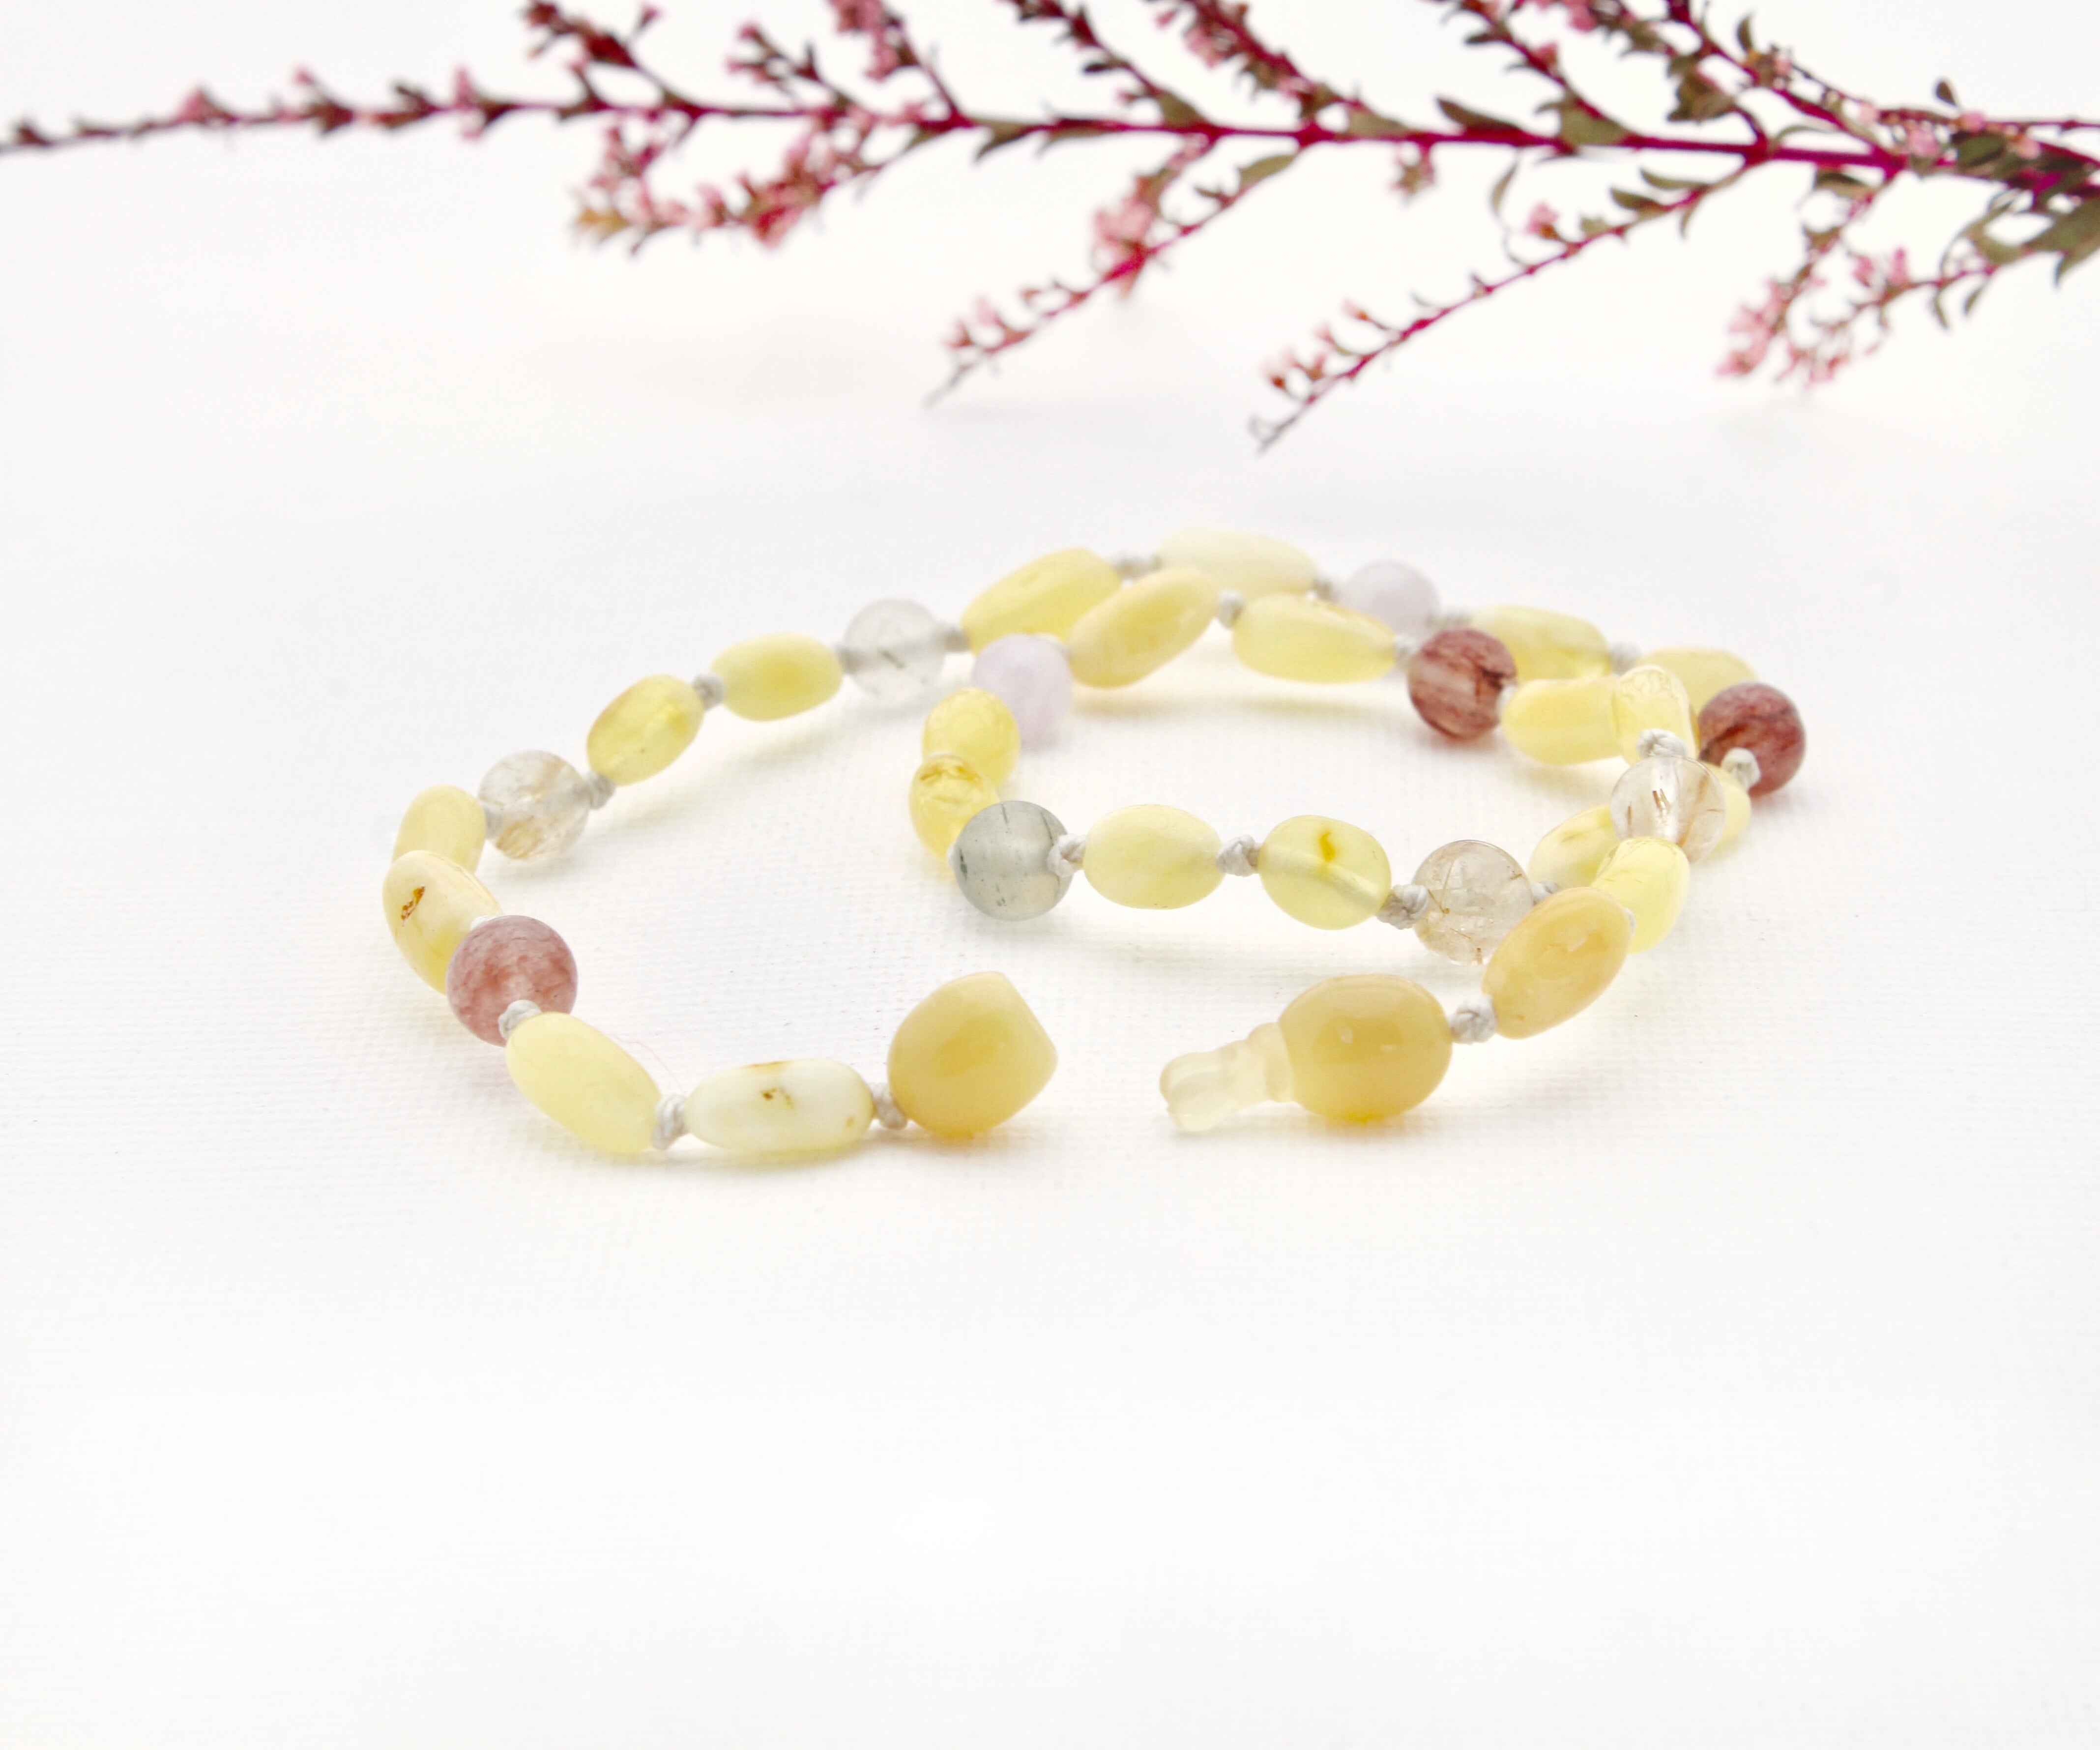 Butter Amber Teething Necklace with Rutilated, Strawberry and Lavender Quartz